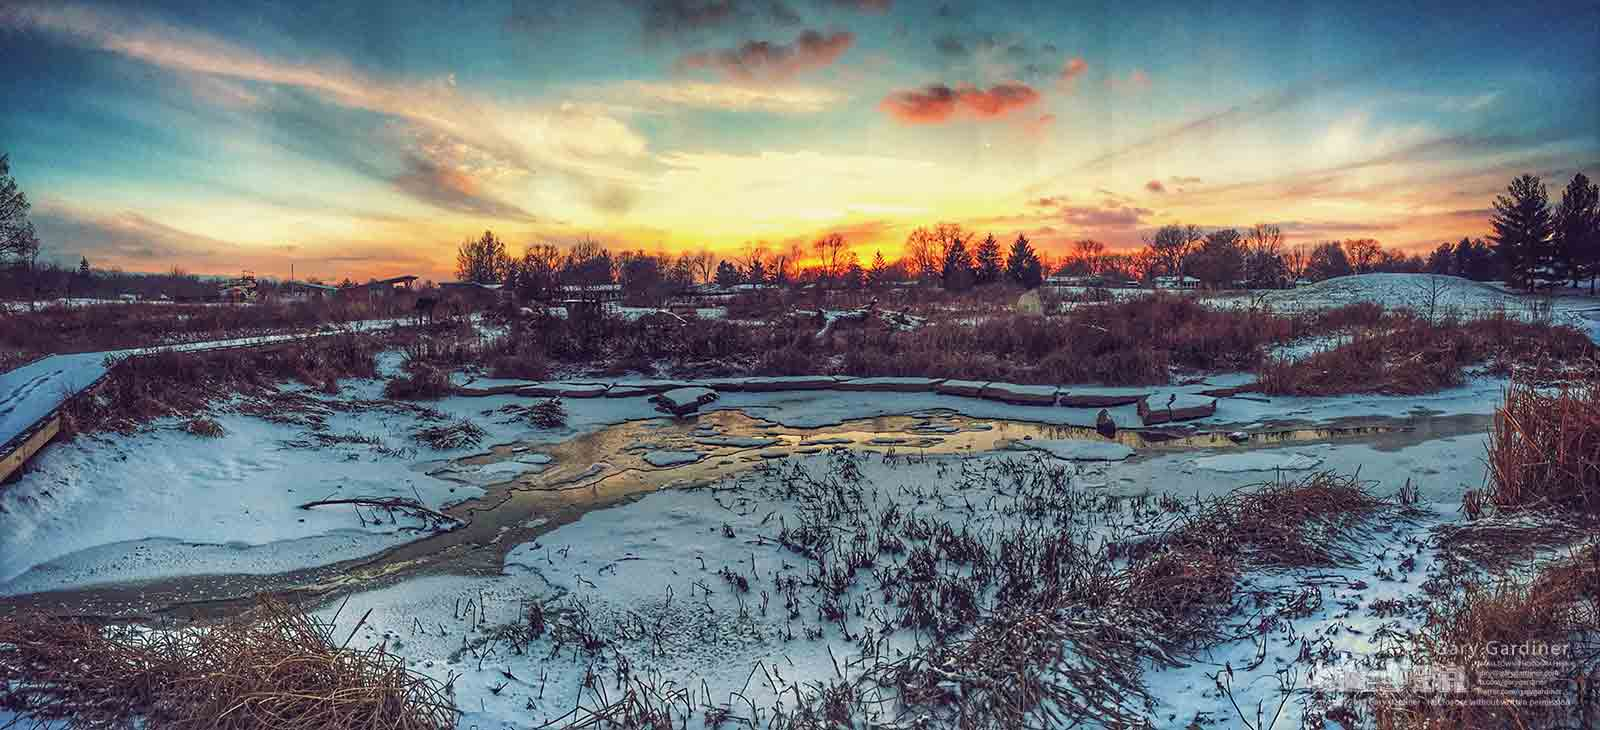 Temperatures in the low teens freezes the slow-moving waters at the Highlands Park wetlands as the sun sets bringing colder overnight temperatures. My Final Photo for Jan. 6, 2016.